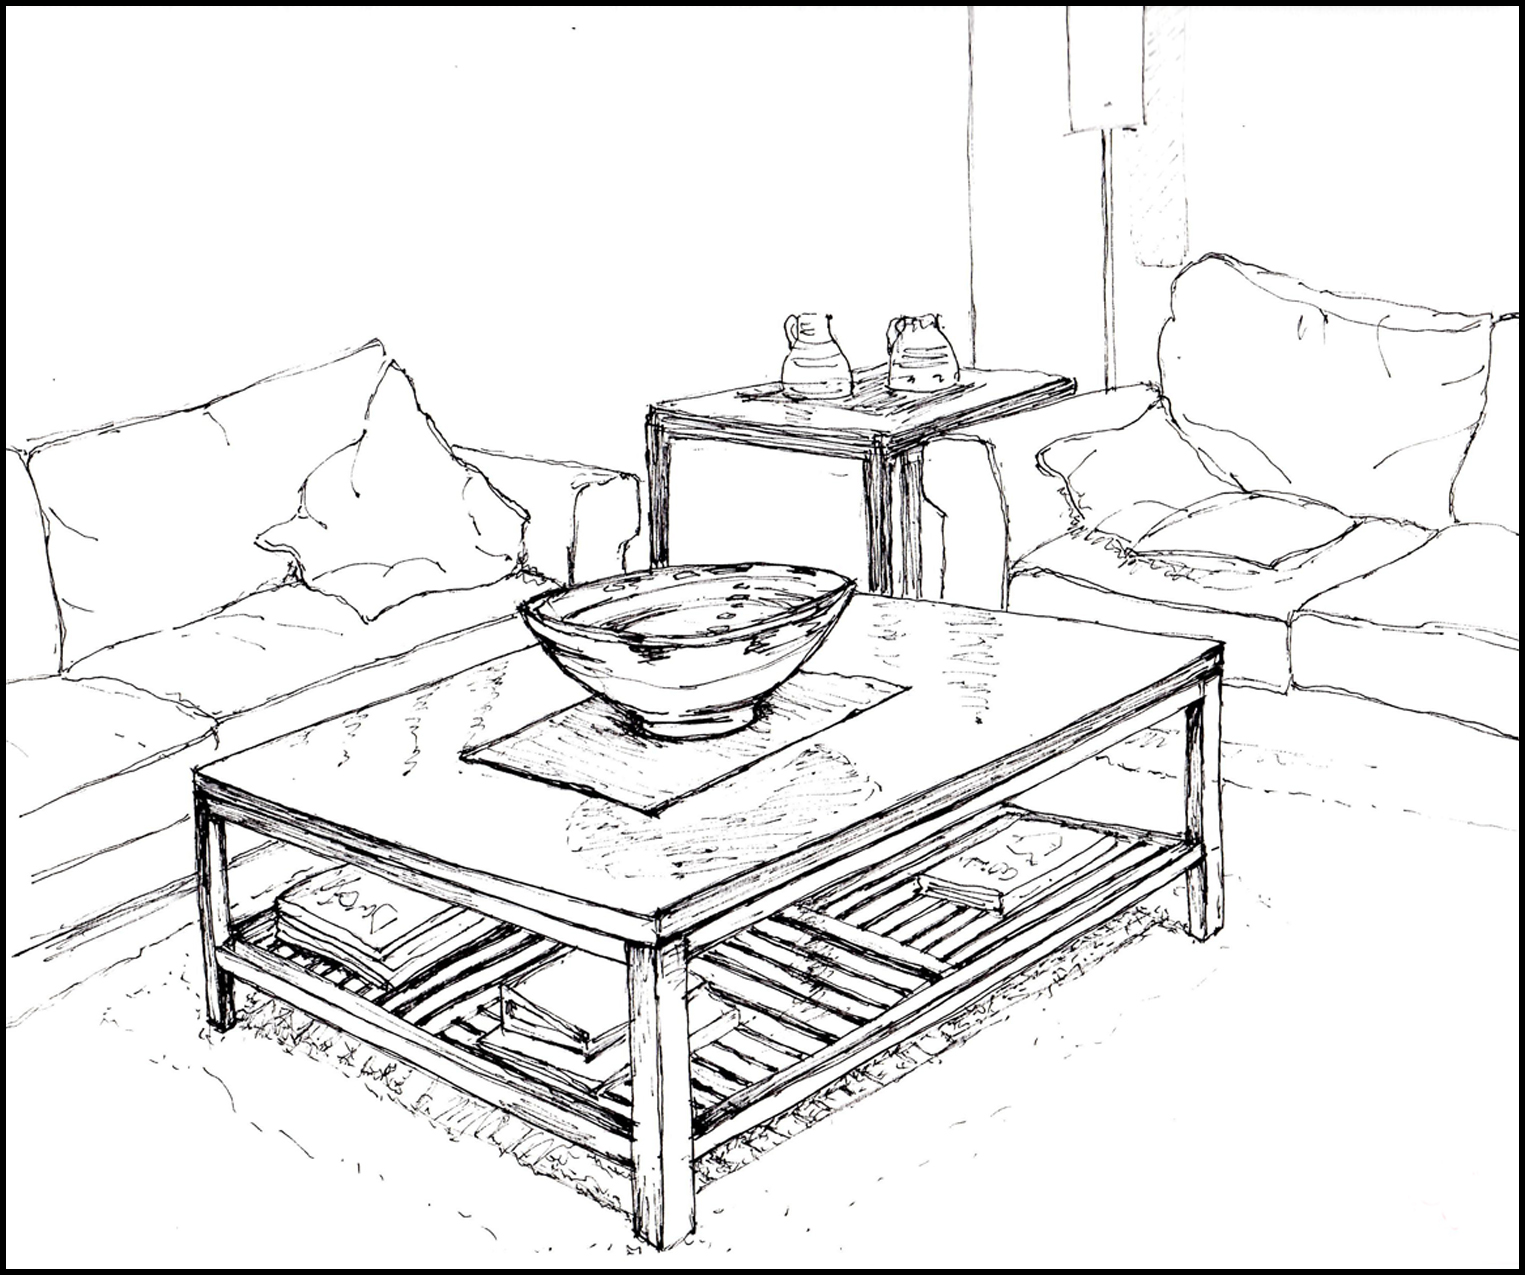 living room sketch sketch of living room